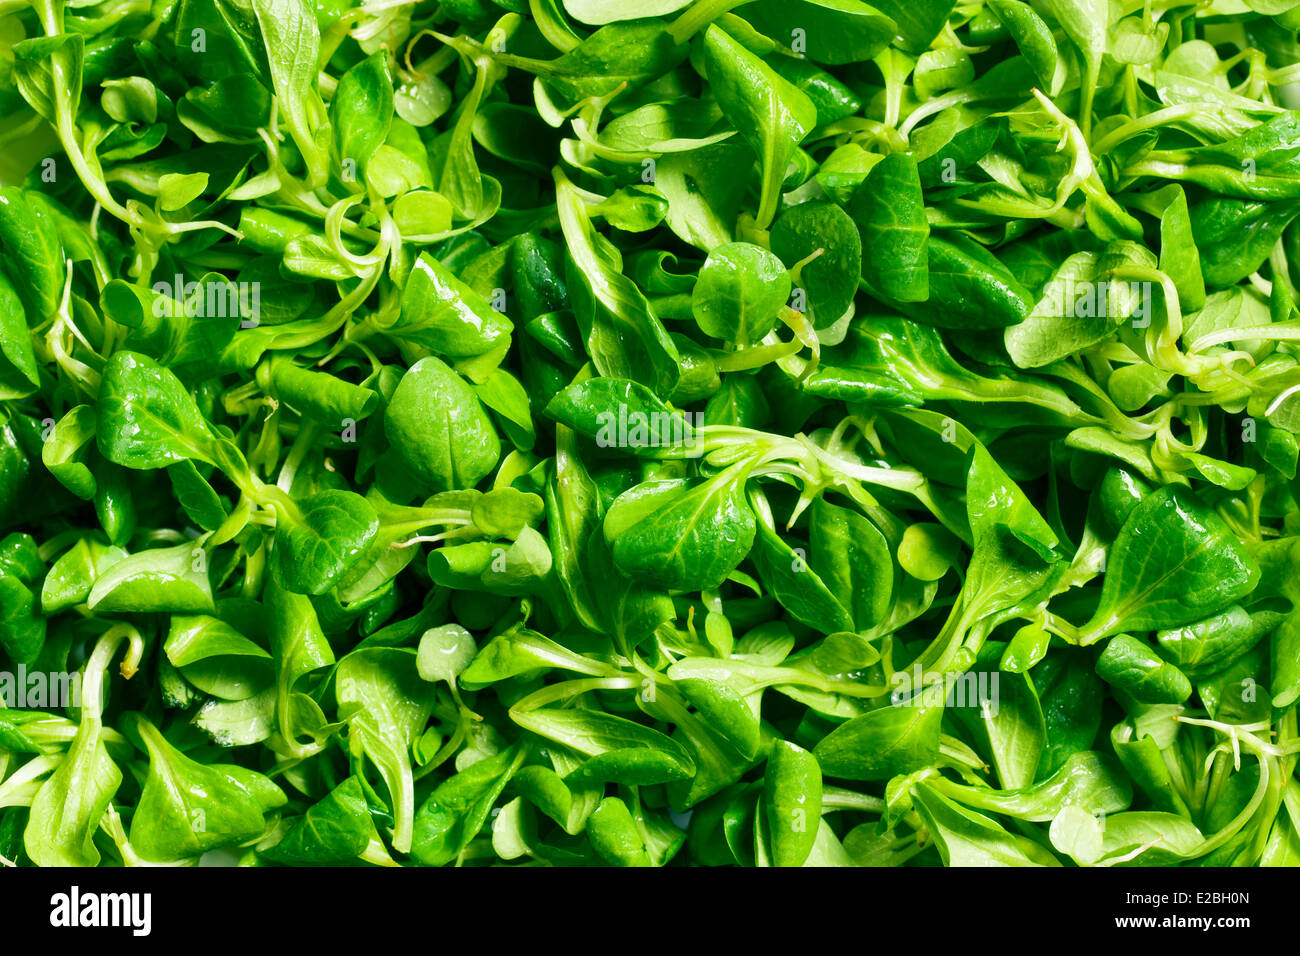 texture of corn salad, lamb's lettuce - Stock Image